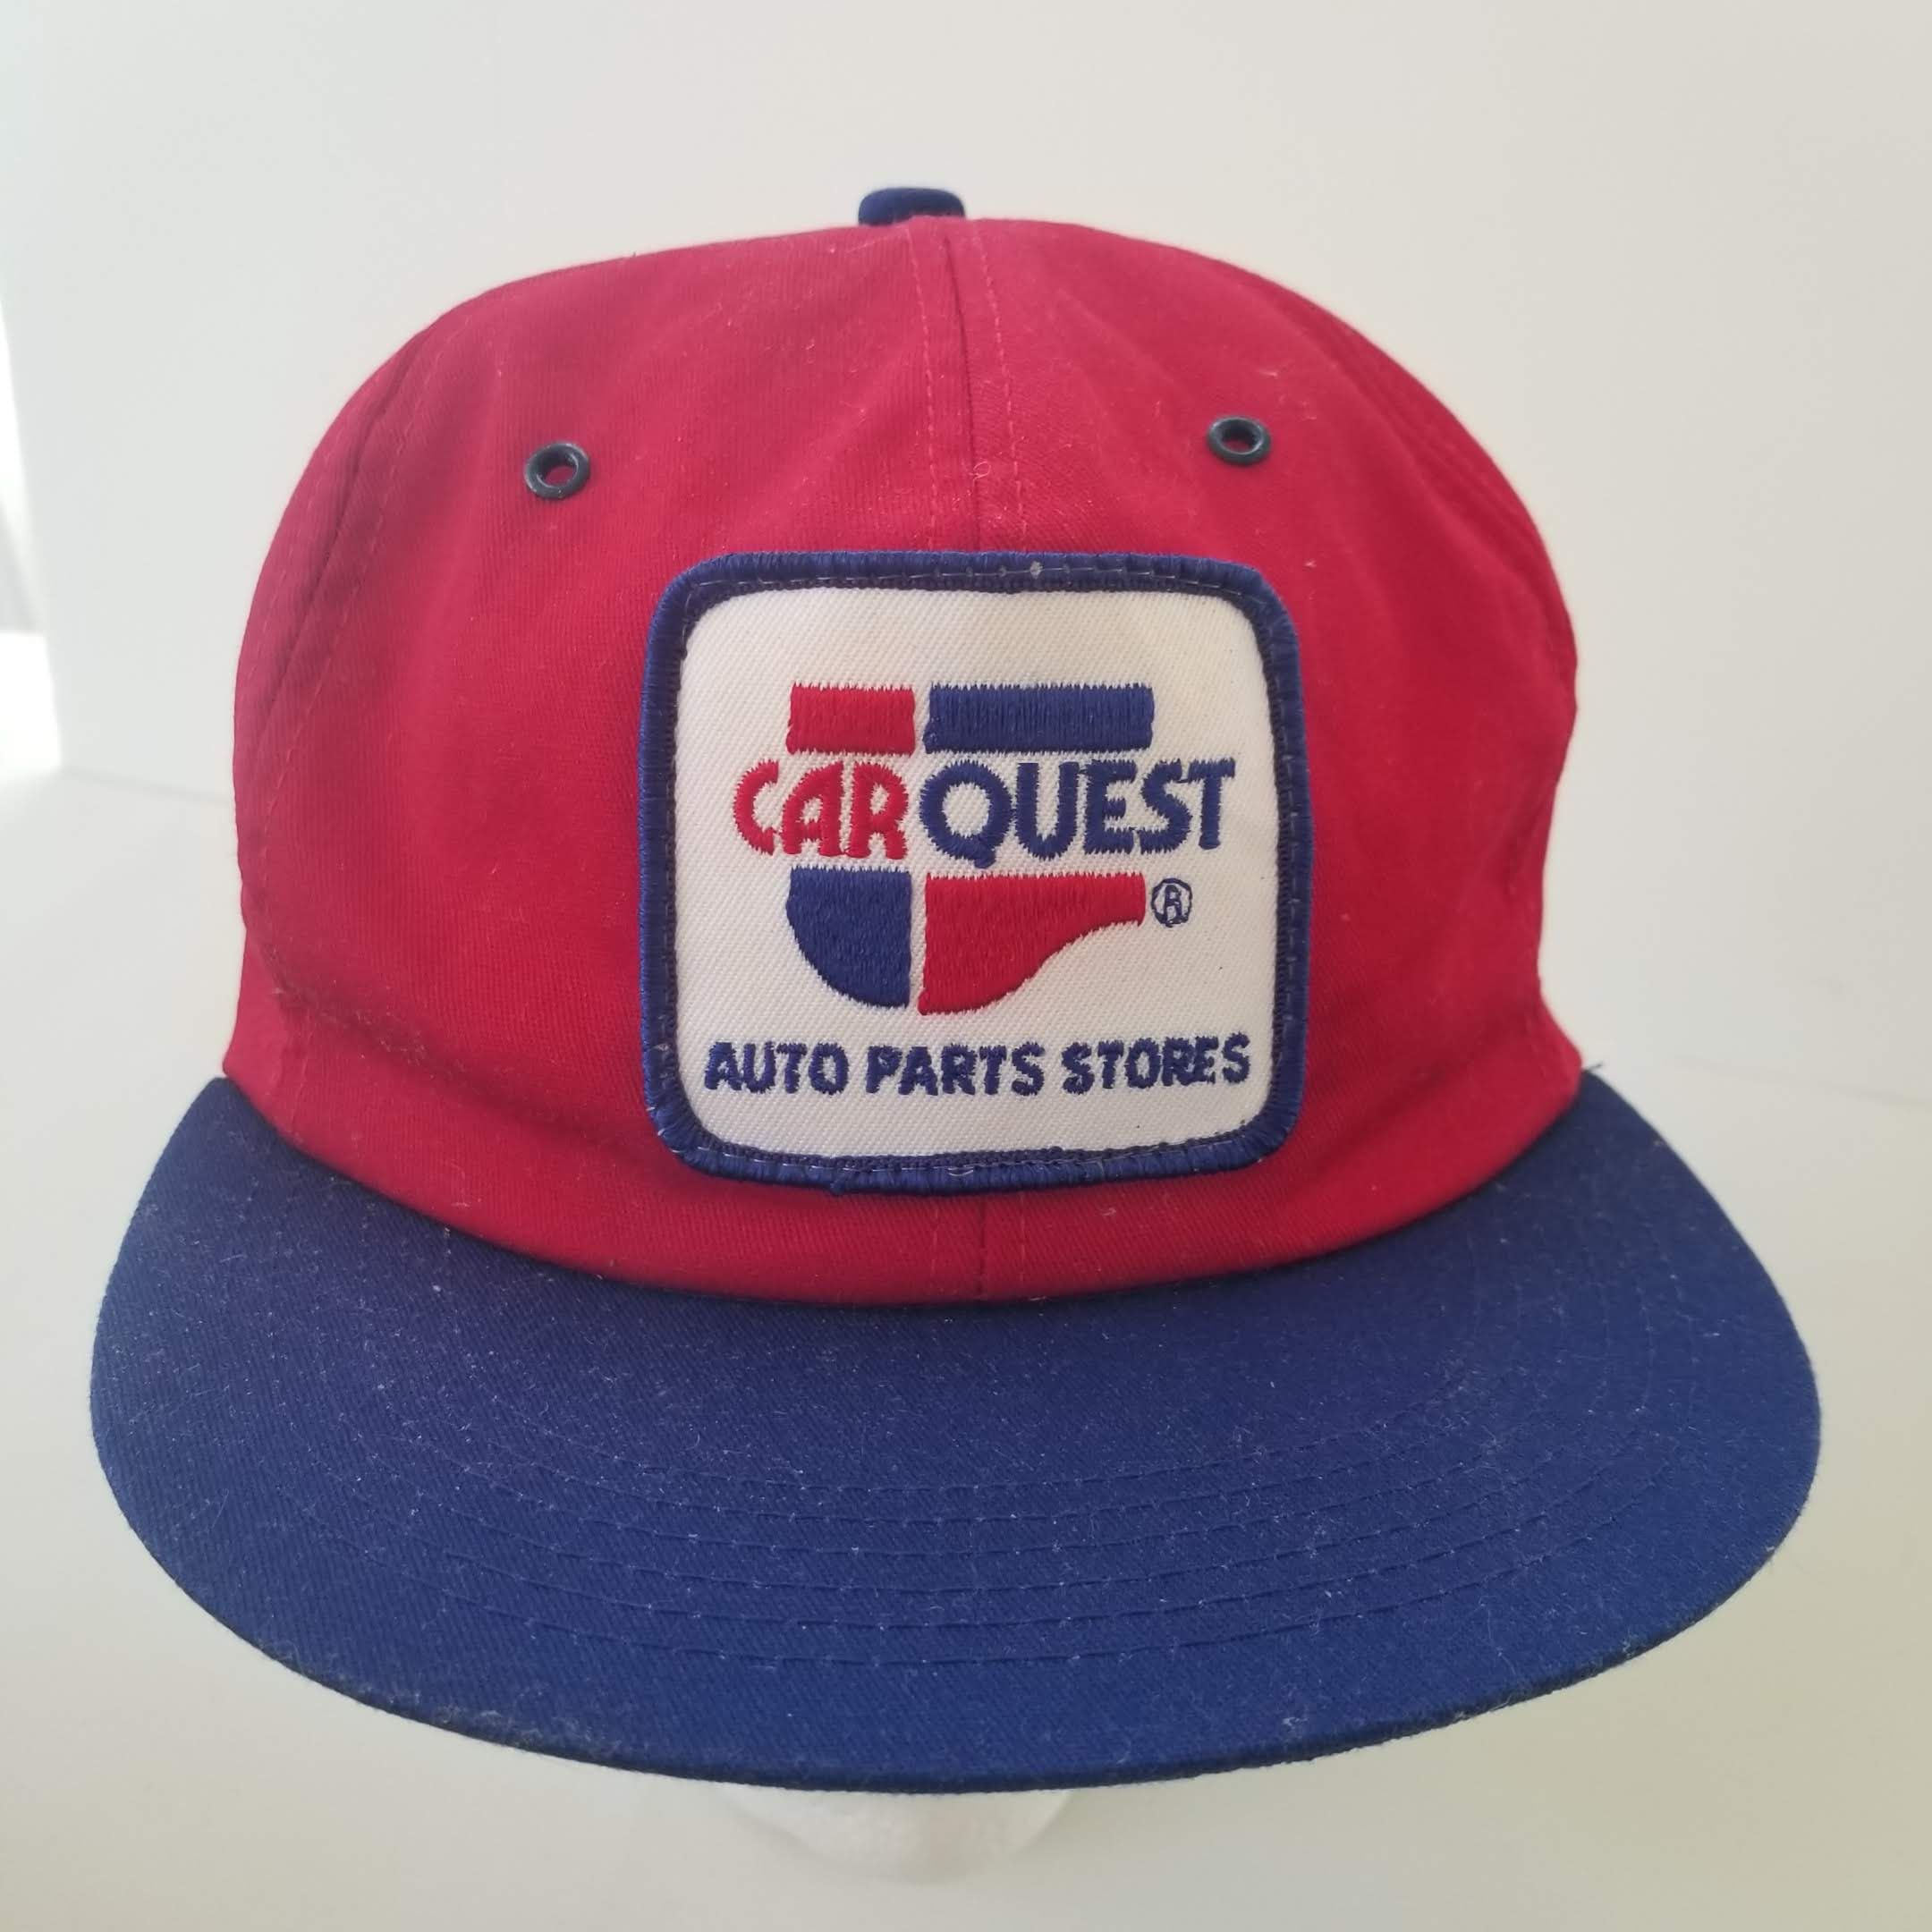 75bad4d7 Vintage 80s Carquest Auto Parts Patch Trucker Hat Snapback Cap K-Products  Made in USA by TraSheeWomen on Etsy #carquest #autopartsstore #vintage #80s  ...